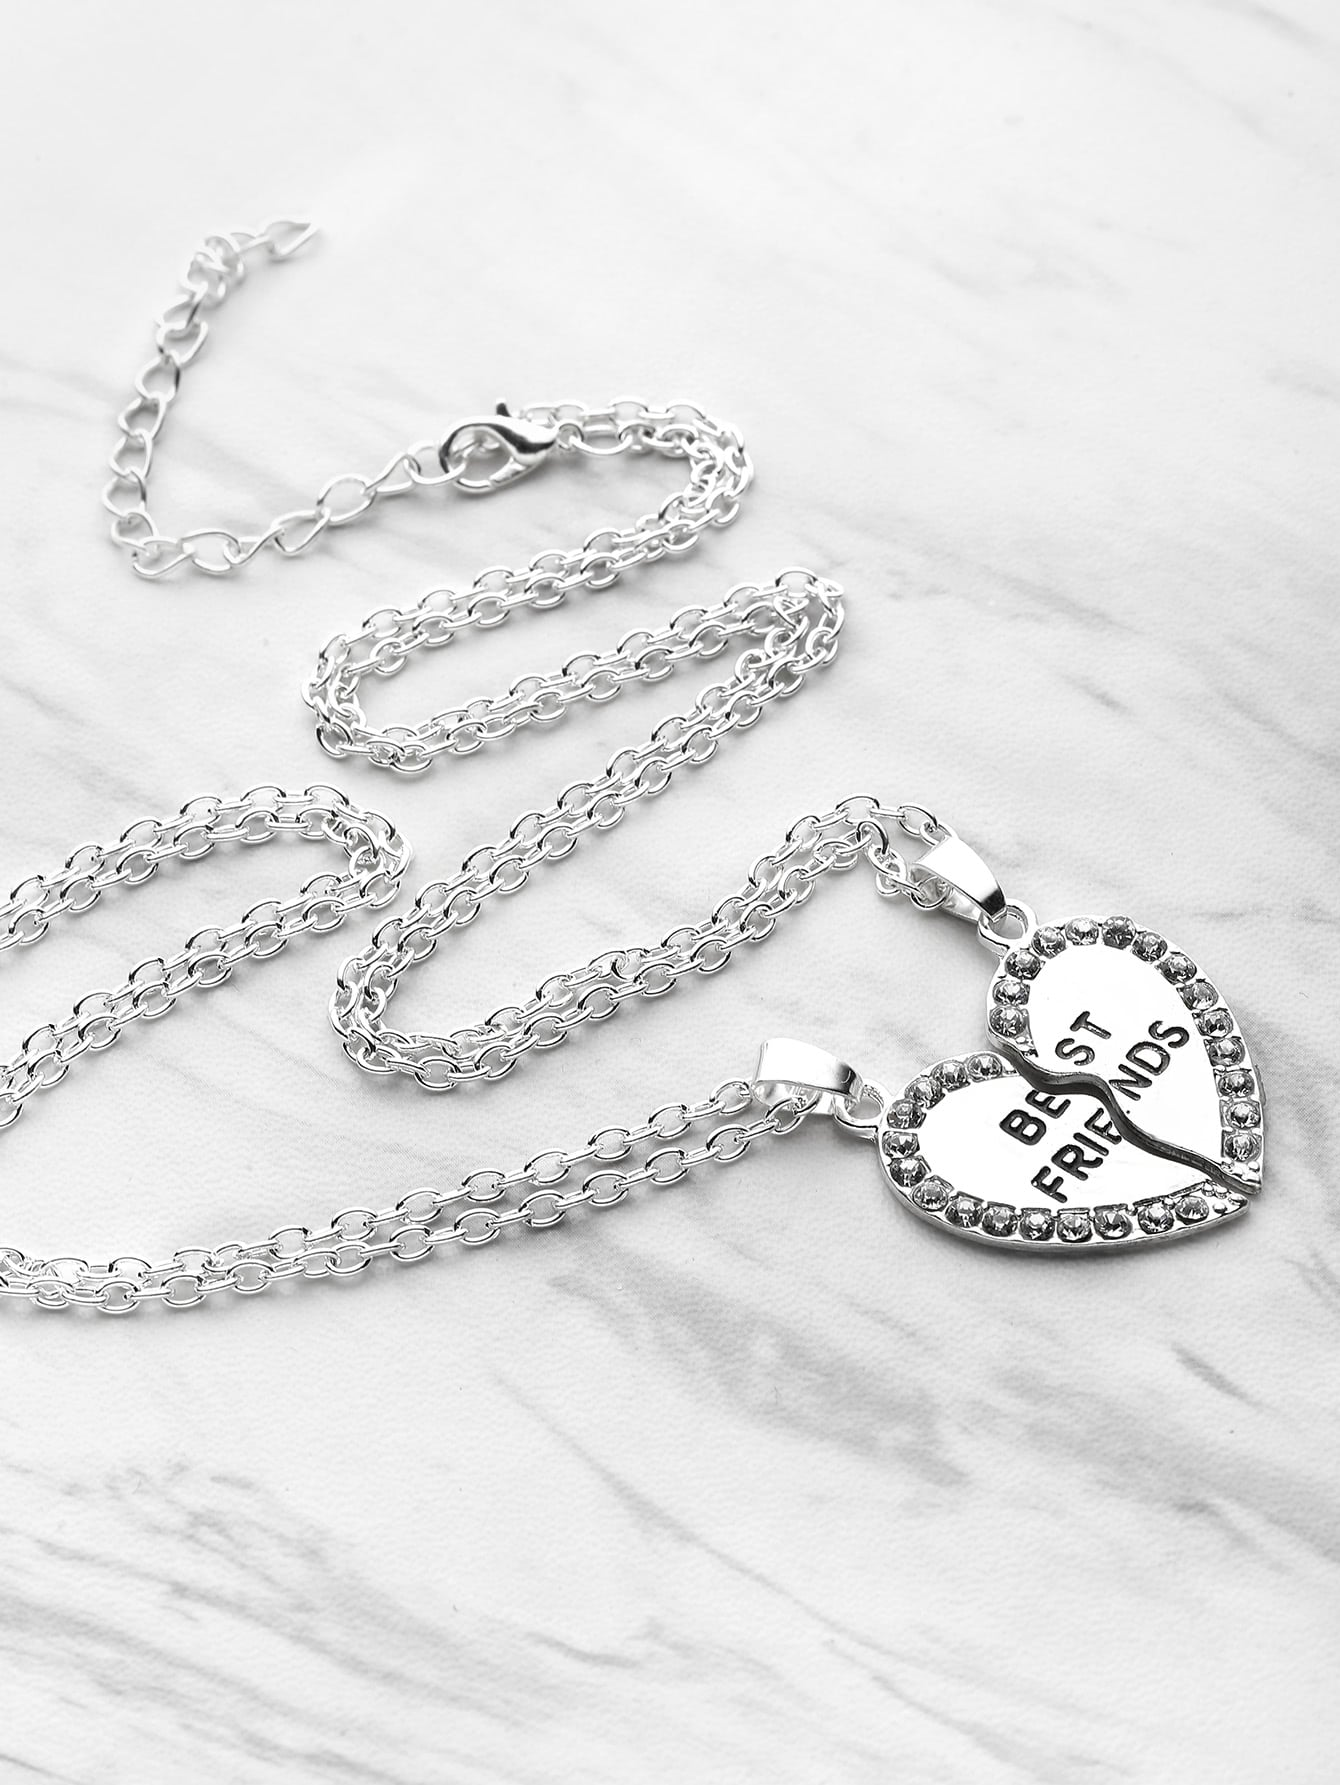 Silver Heart Shaped Rhinestone Trim  Best Friends Friendship Necklace  - 2pcs